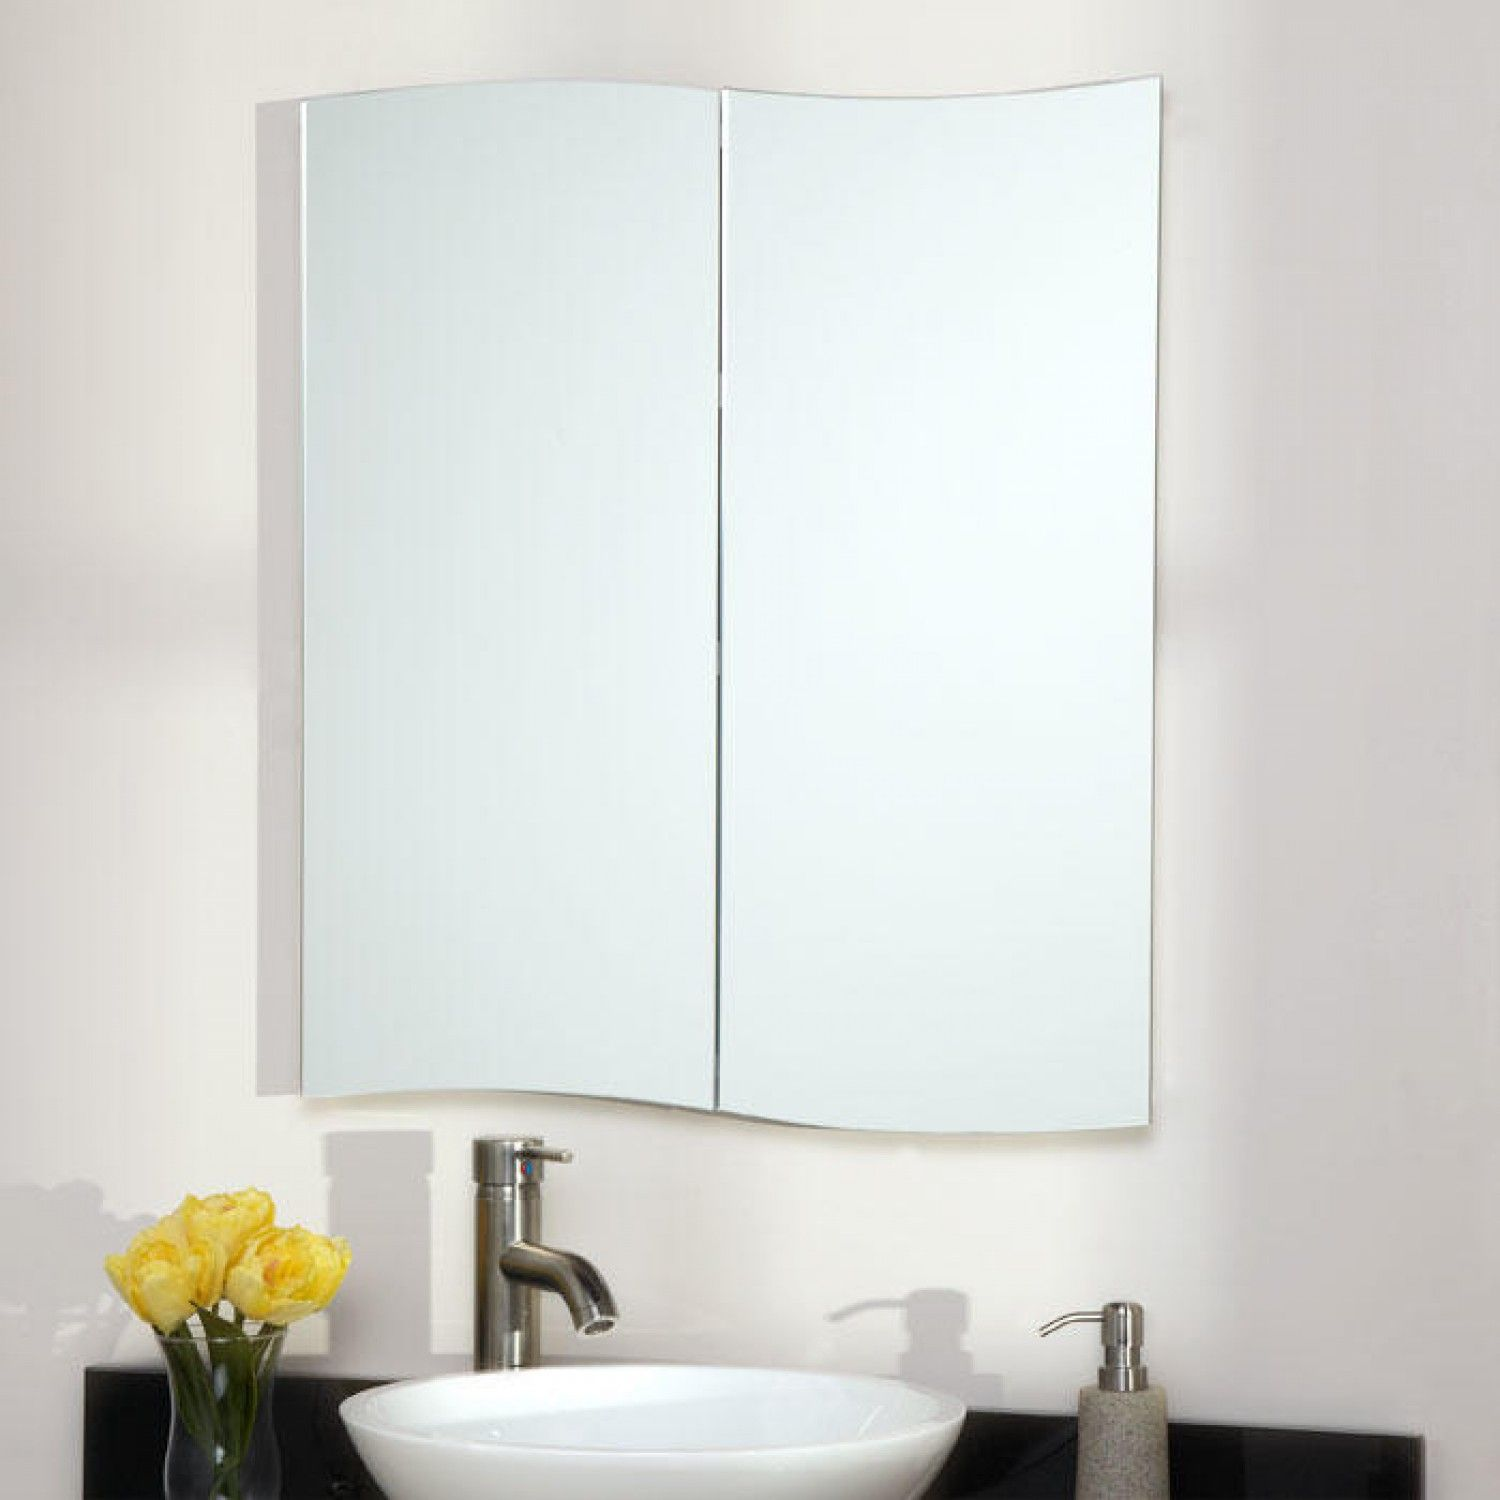 Gatewood Stainless Steel Recessed Medicine Cabinet - White Powder ...